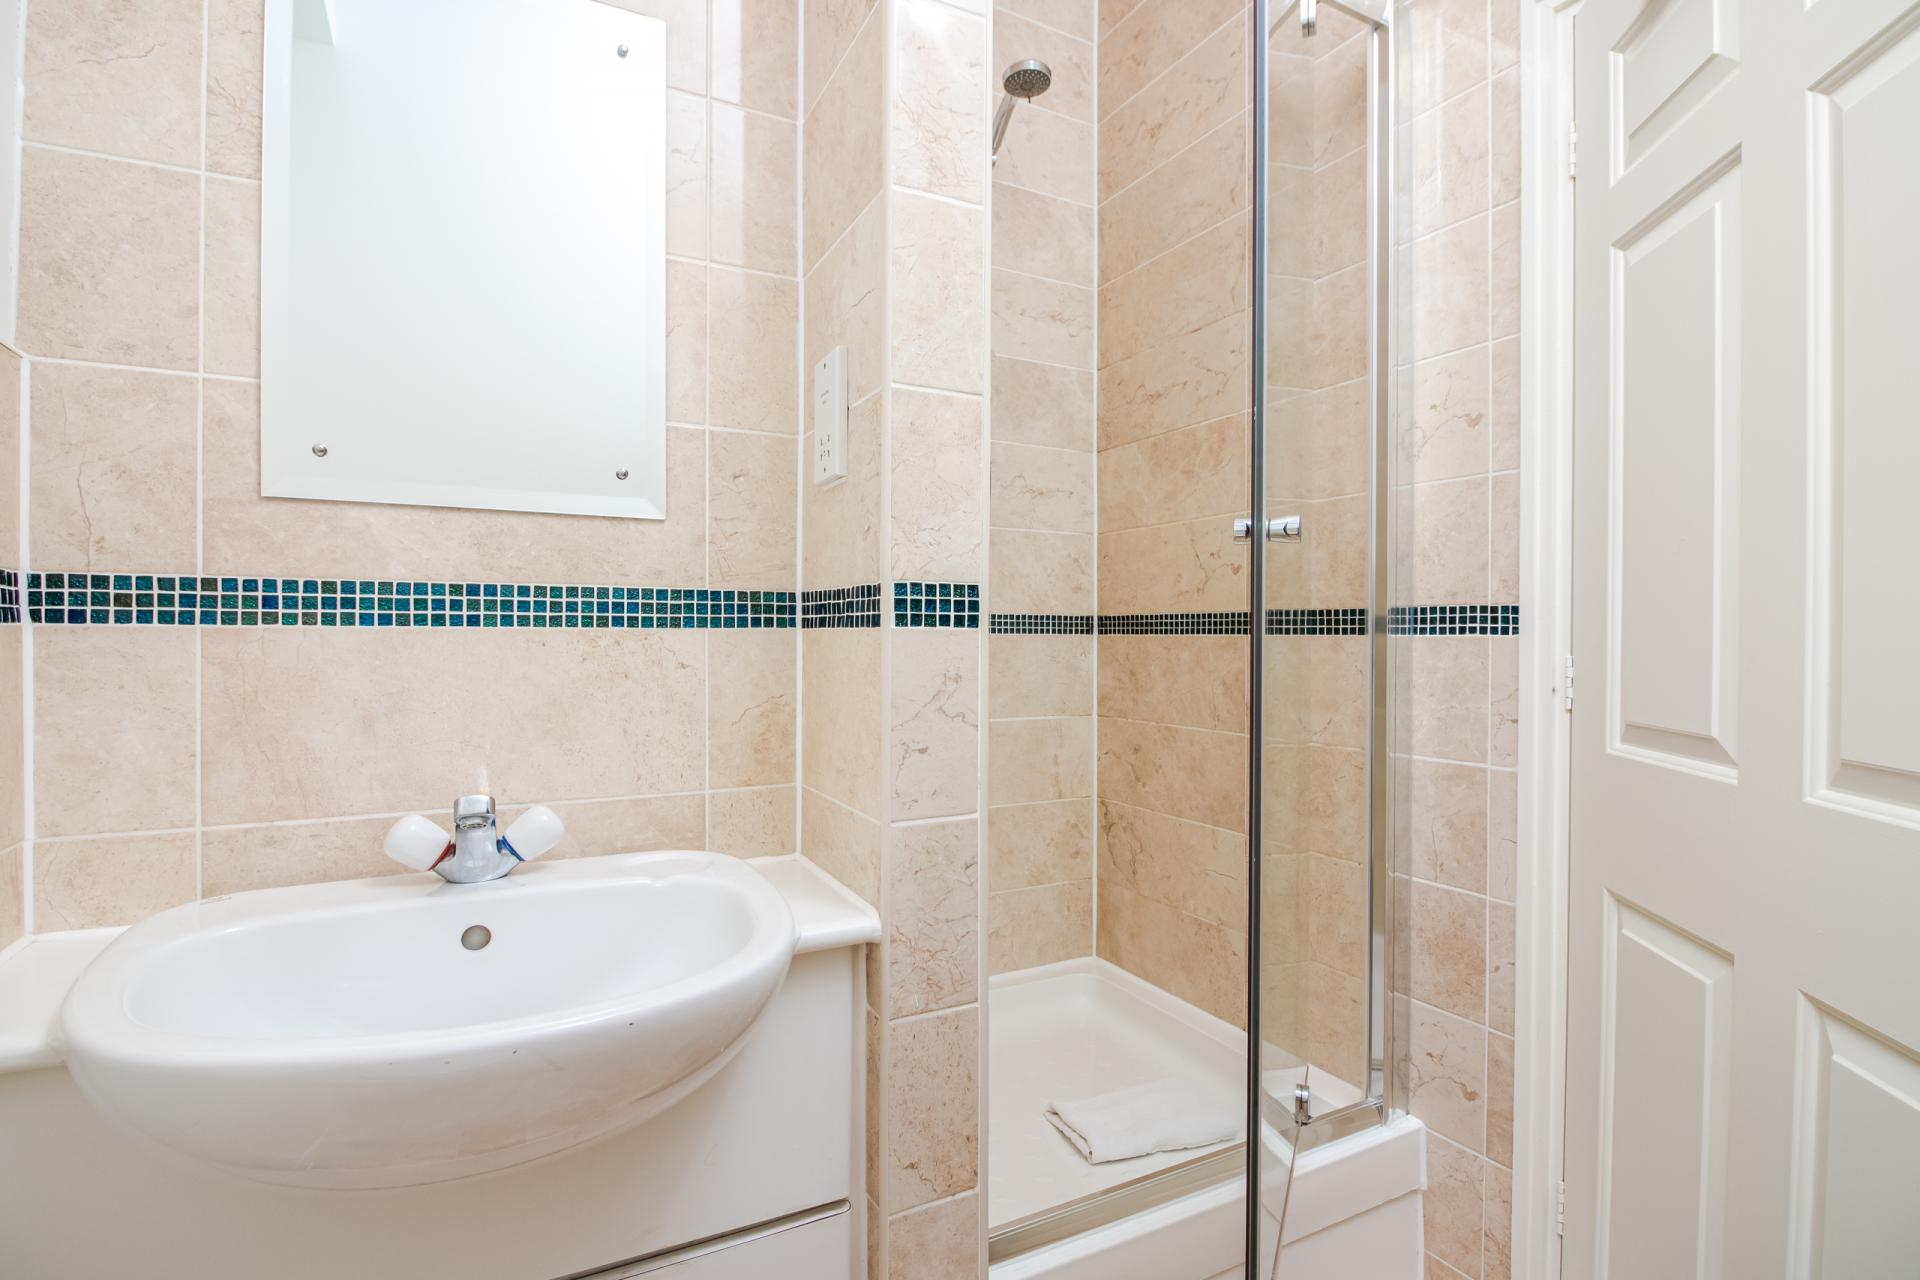 Bathroom at Priory House Apartments, City, London